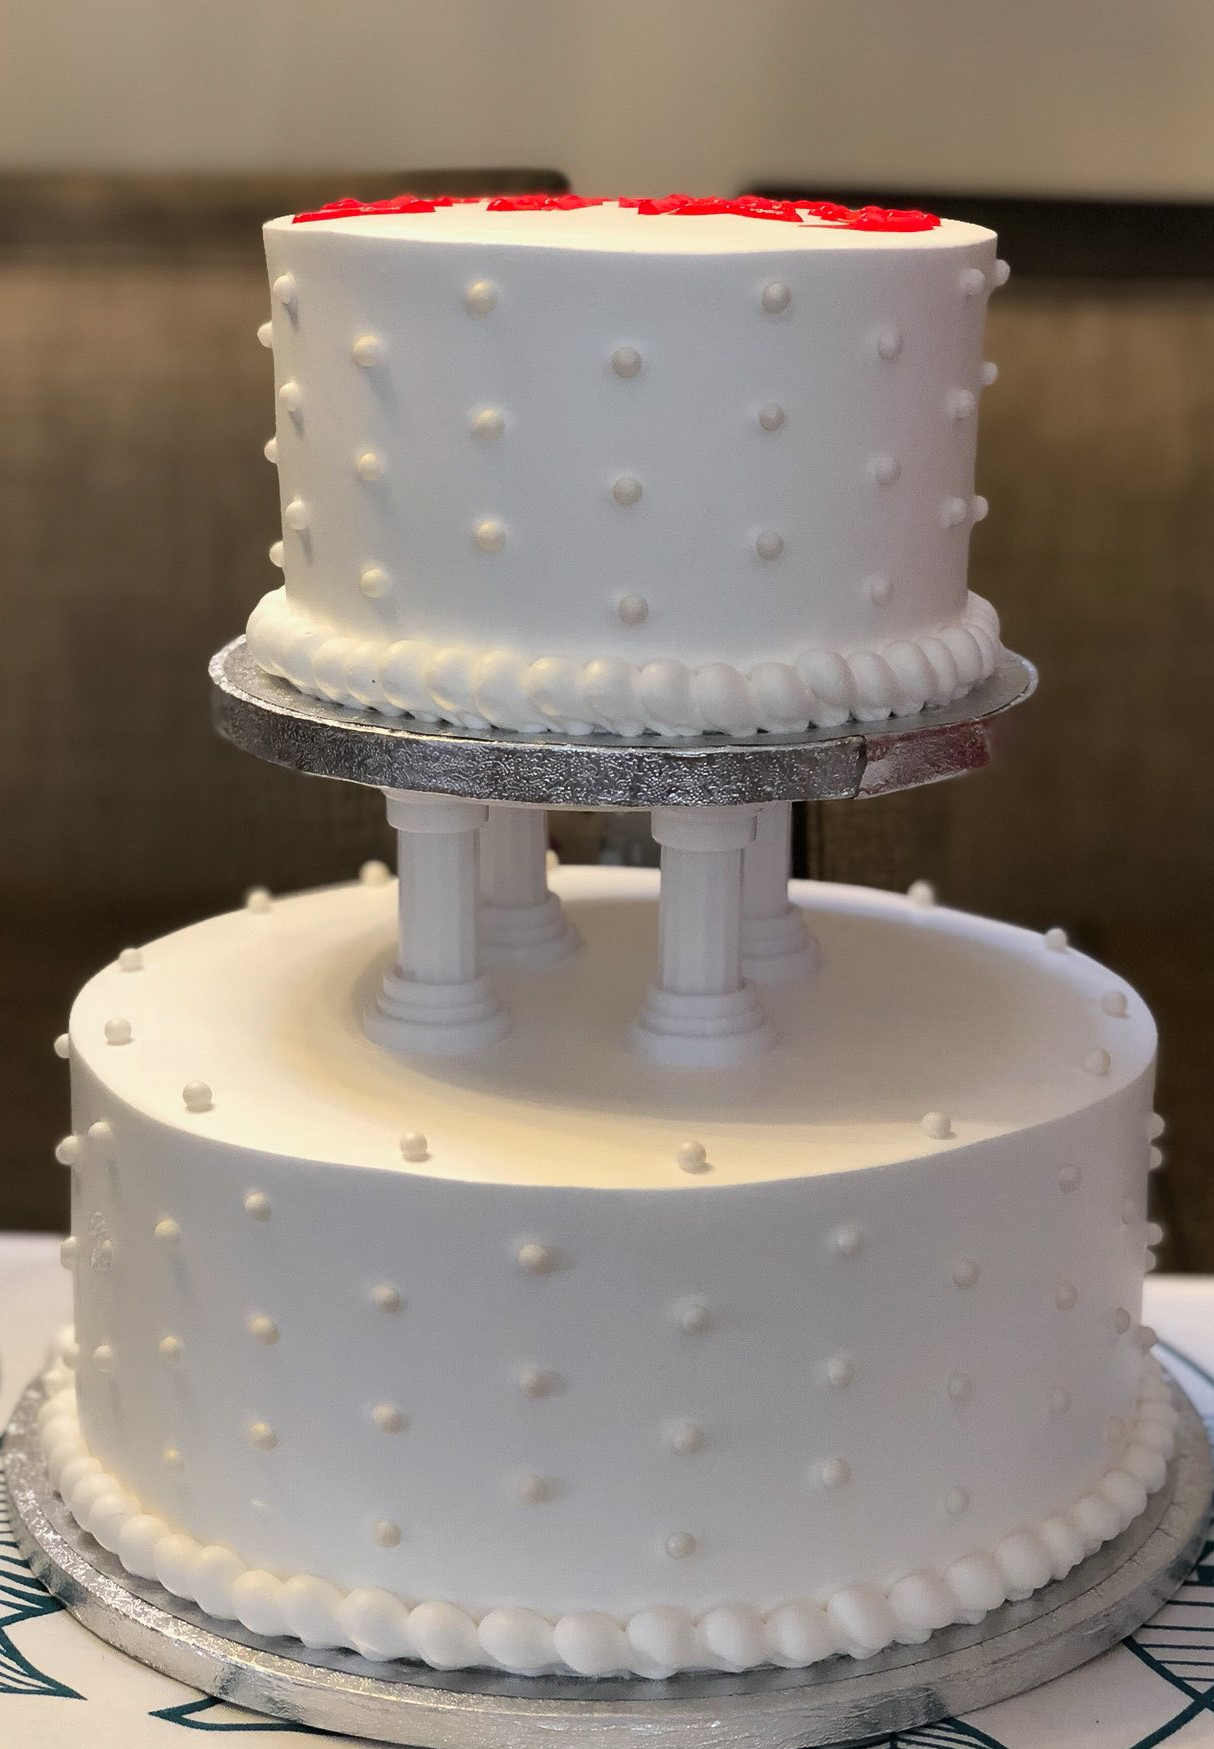 W7 - 2 layered cake decorated with Pearl Candies